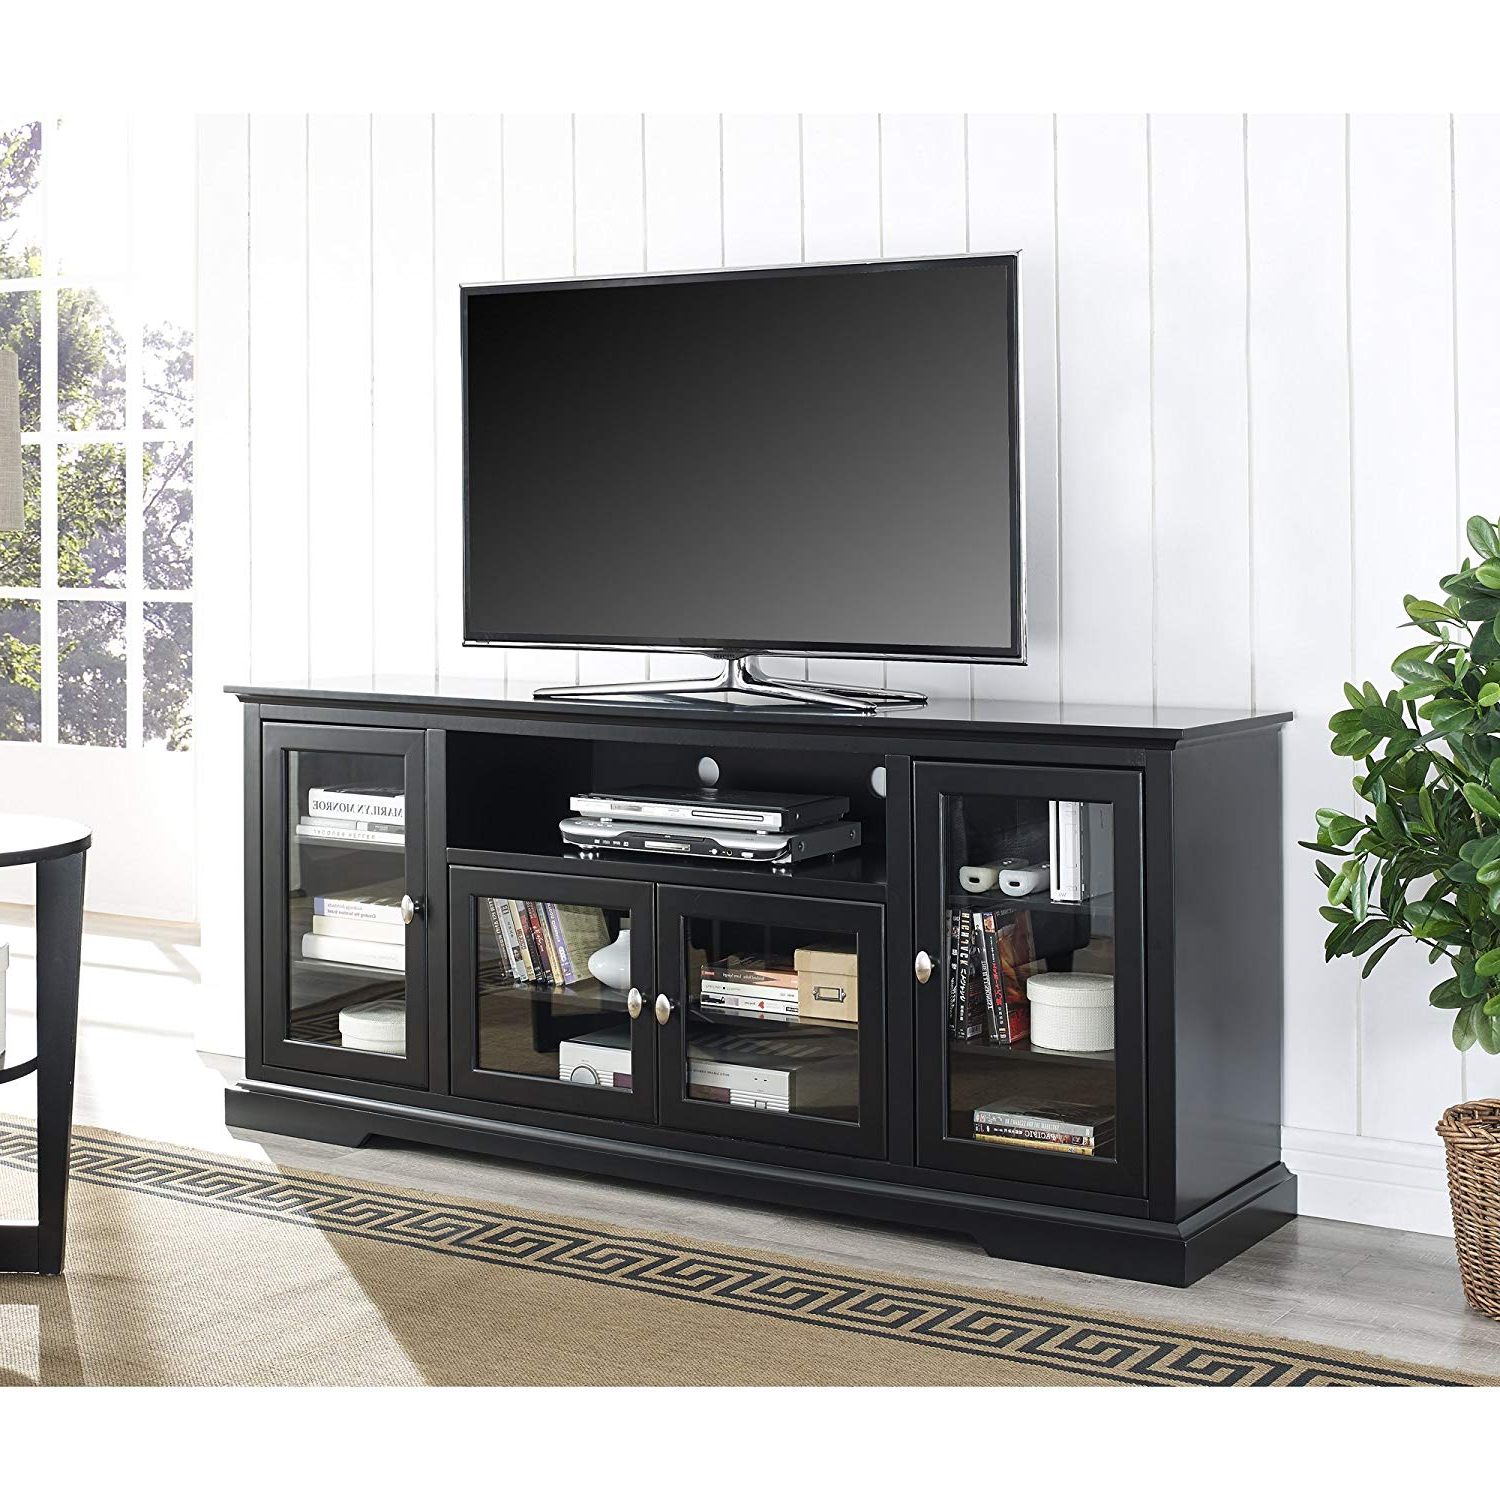 "Amazon: We Furniture 70"" Highboy Style Wood Tv Stand Console With Widely Used Tall Black Tv Cabinets (Gallery 2 of 20)"